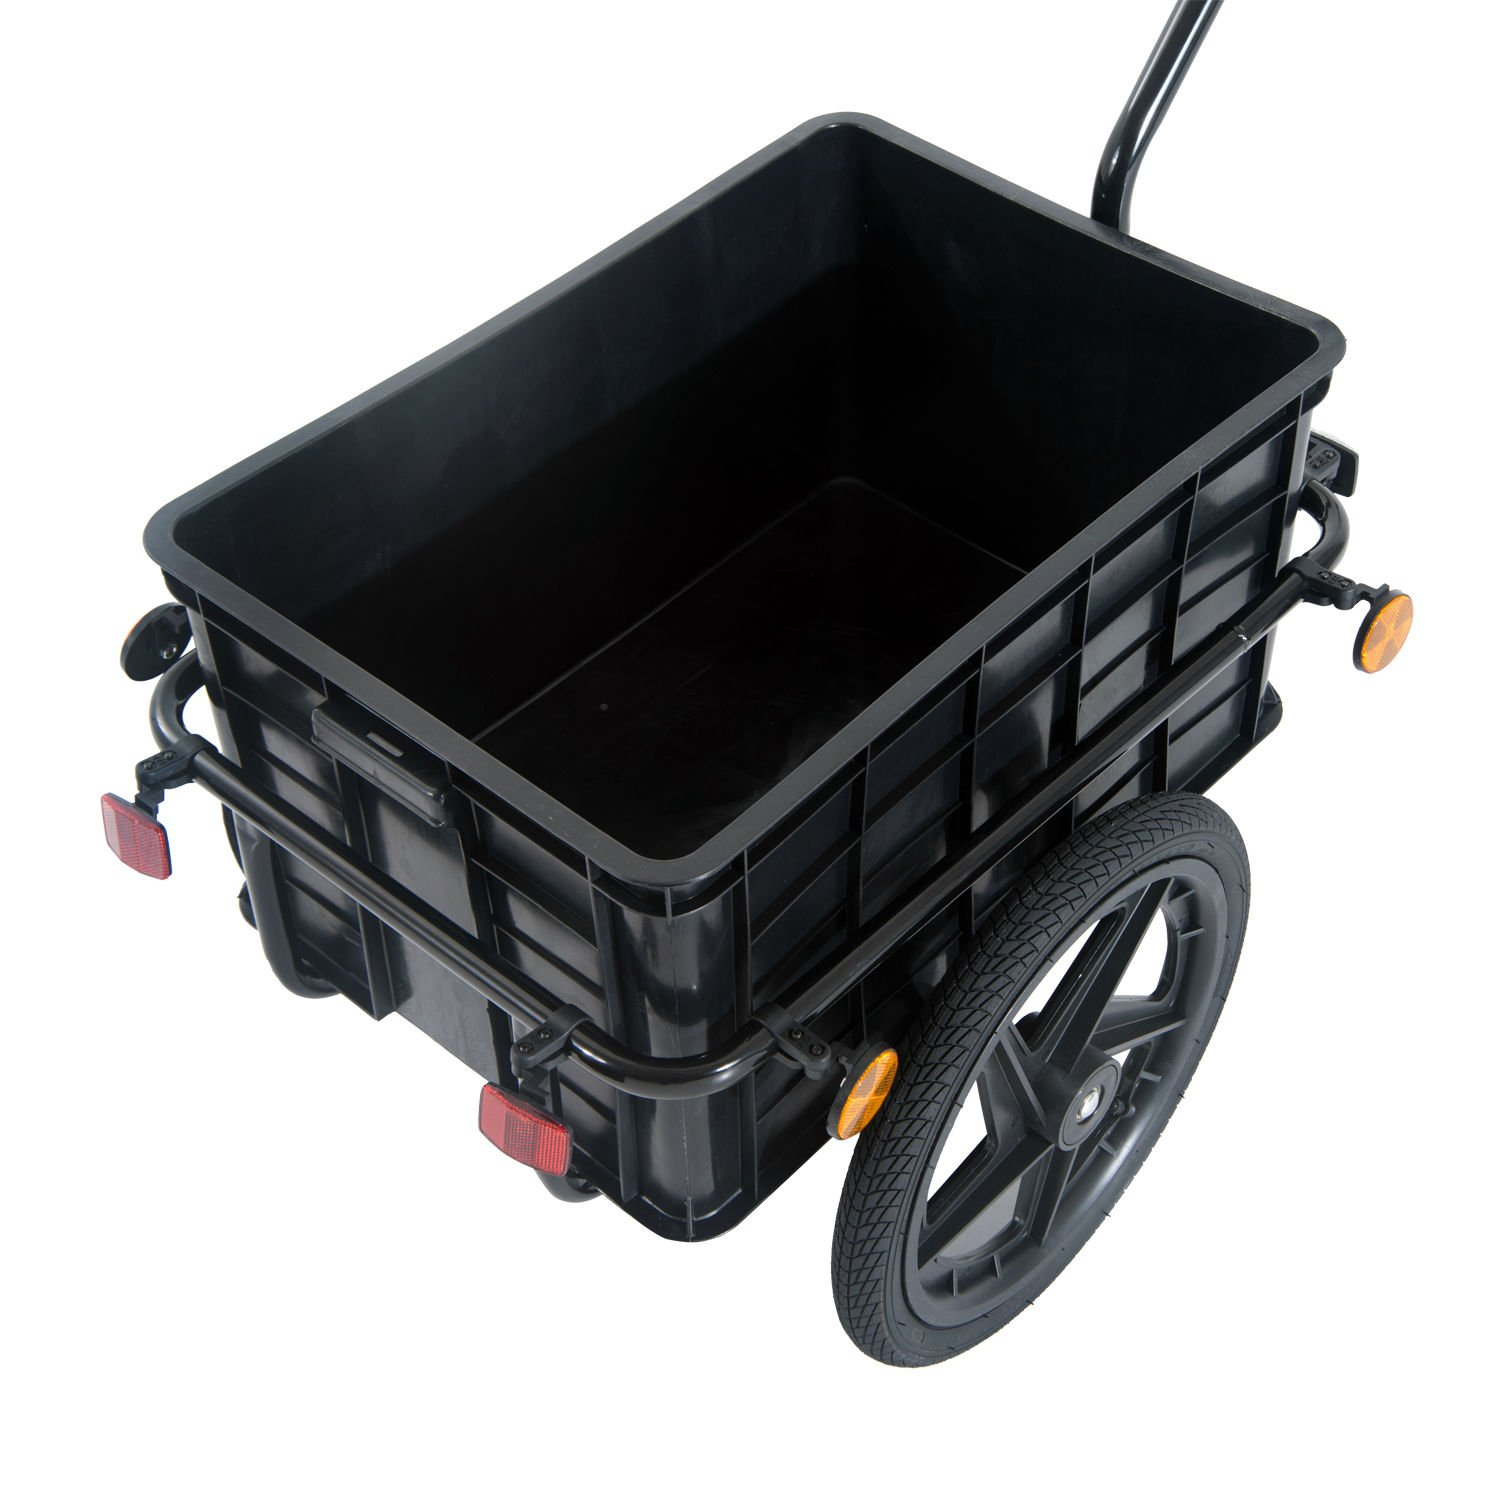 Aosom Enclosed Bicycle Cargo Trailer - Black by Aosom (Image #4)